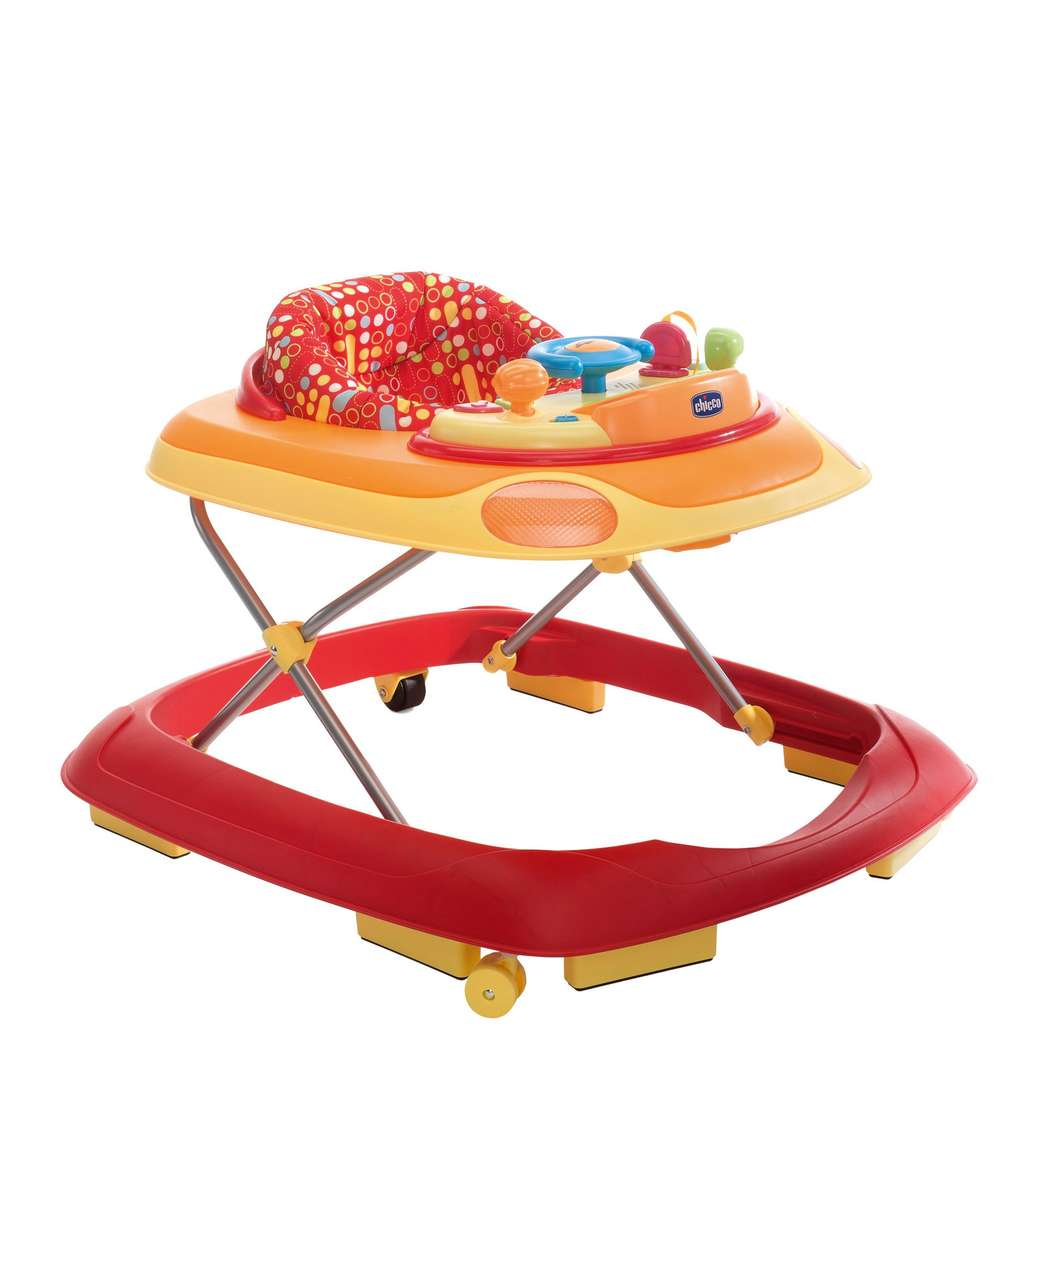 Inflatable, Baby Walkers Safe Interactive Entertainment For Your Baby